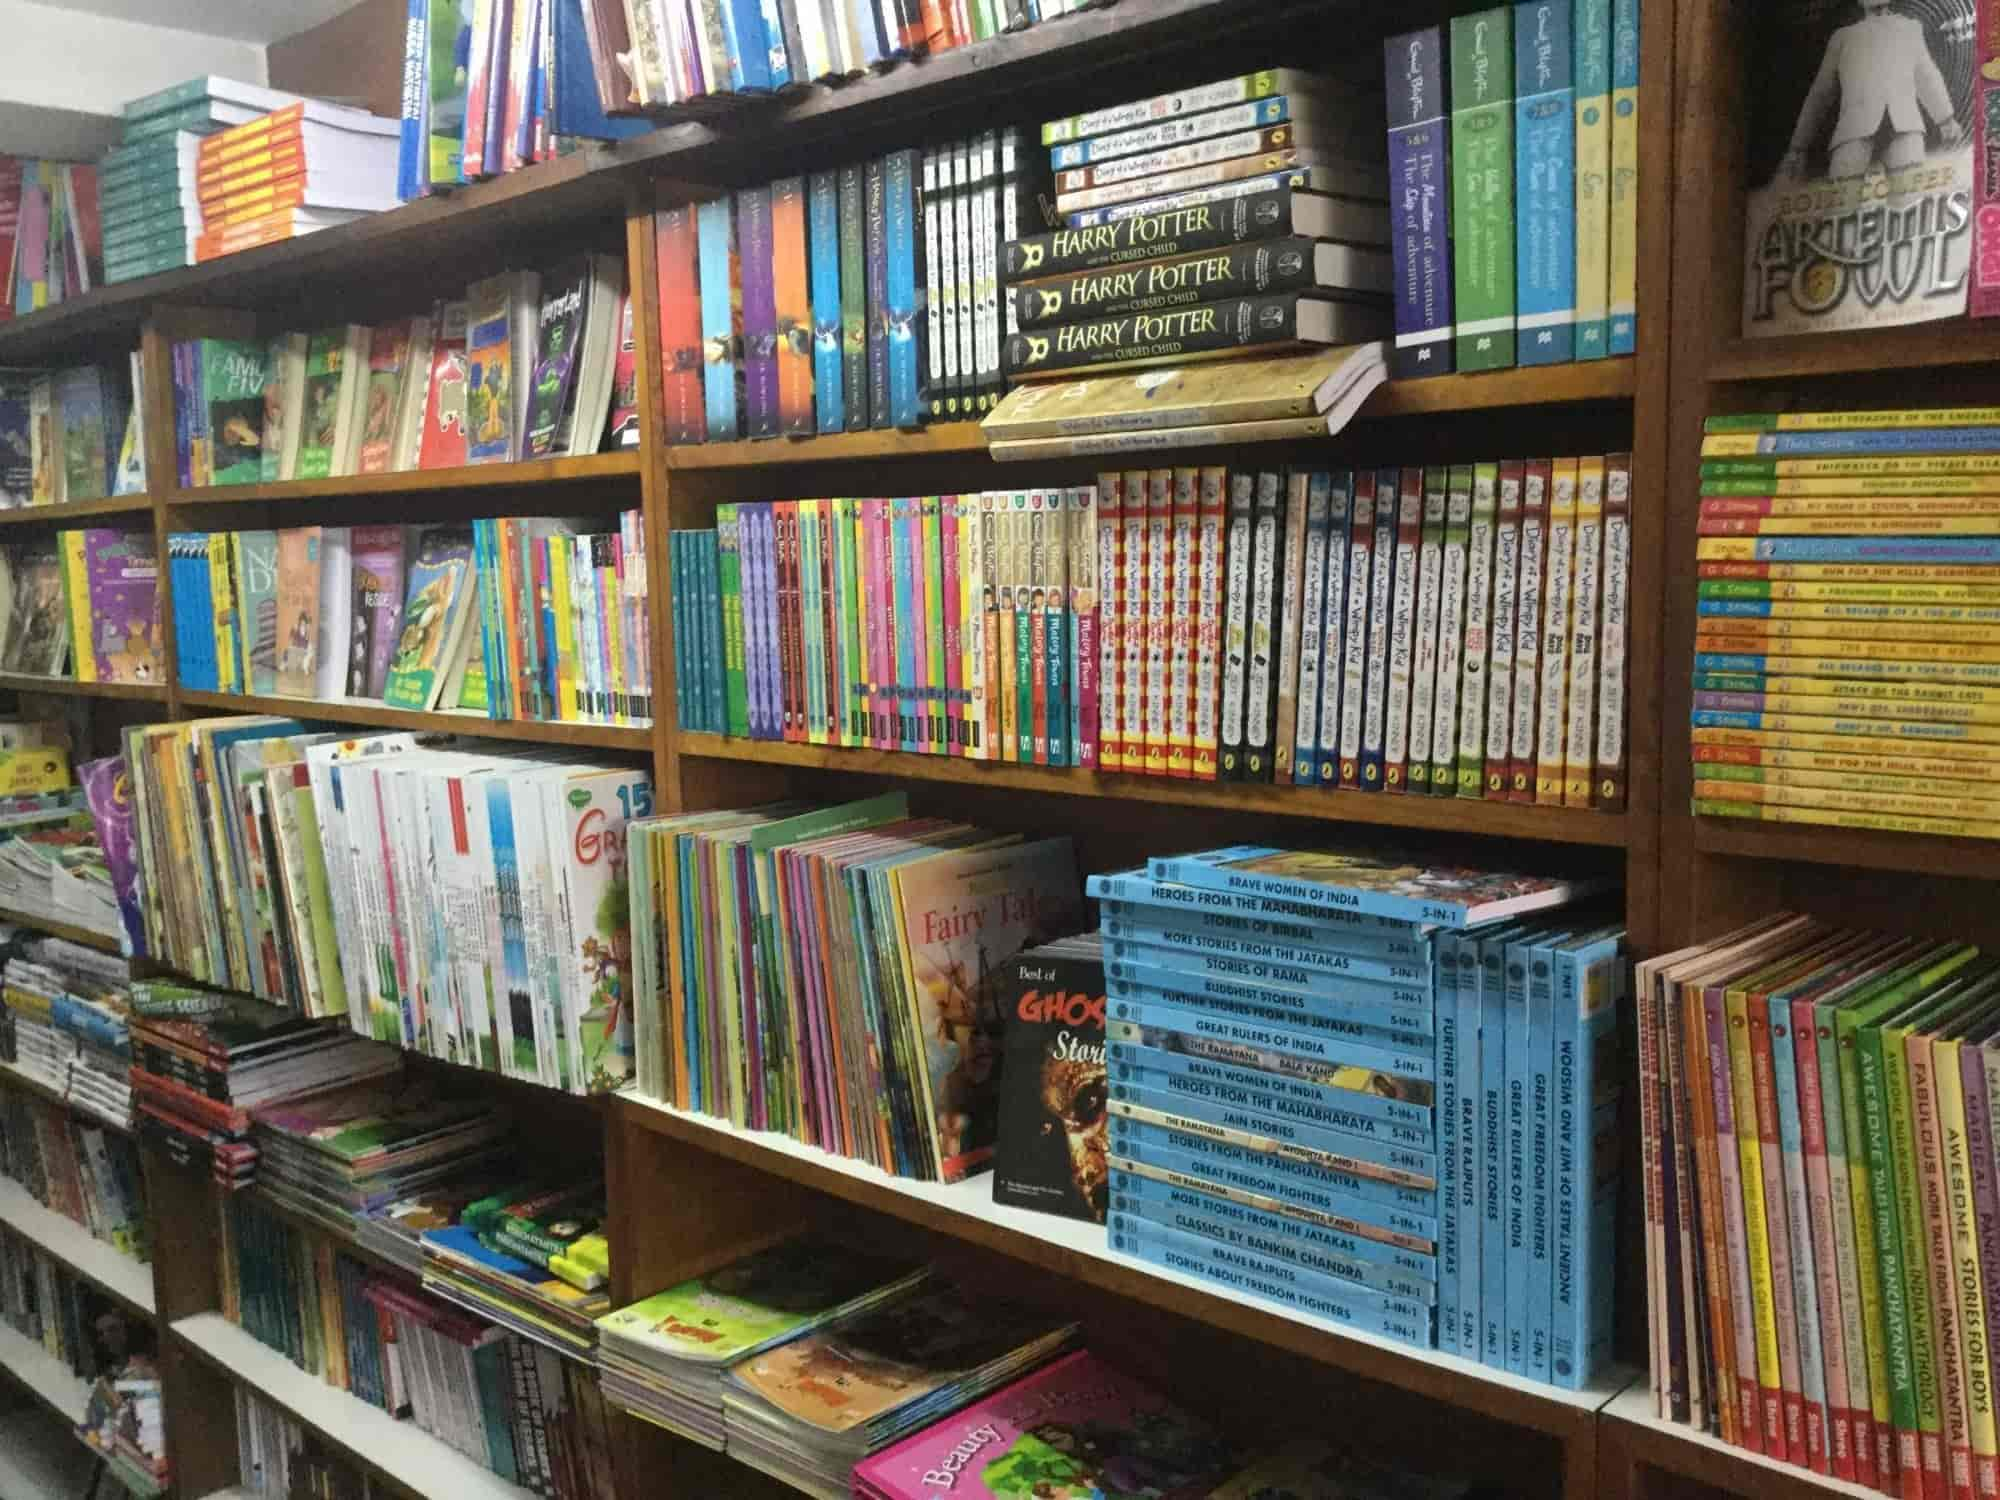 Navakarnataka Publications Pvt Ltd, Balmatta - Book Shops in